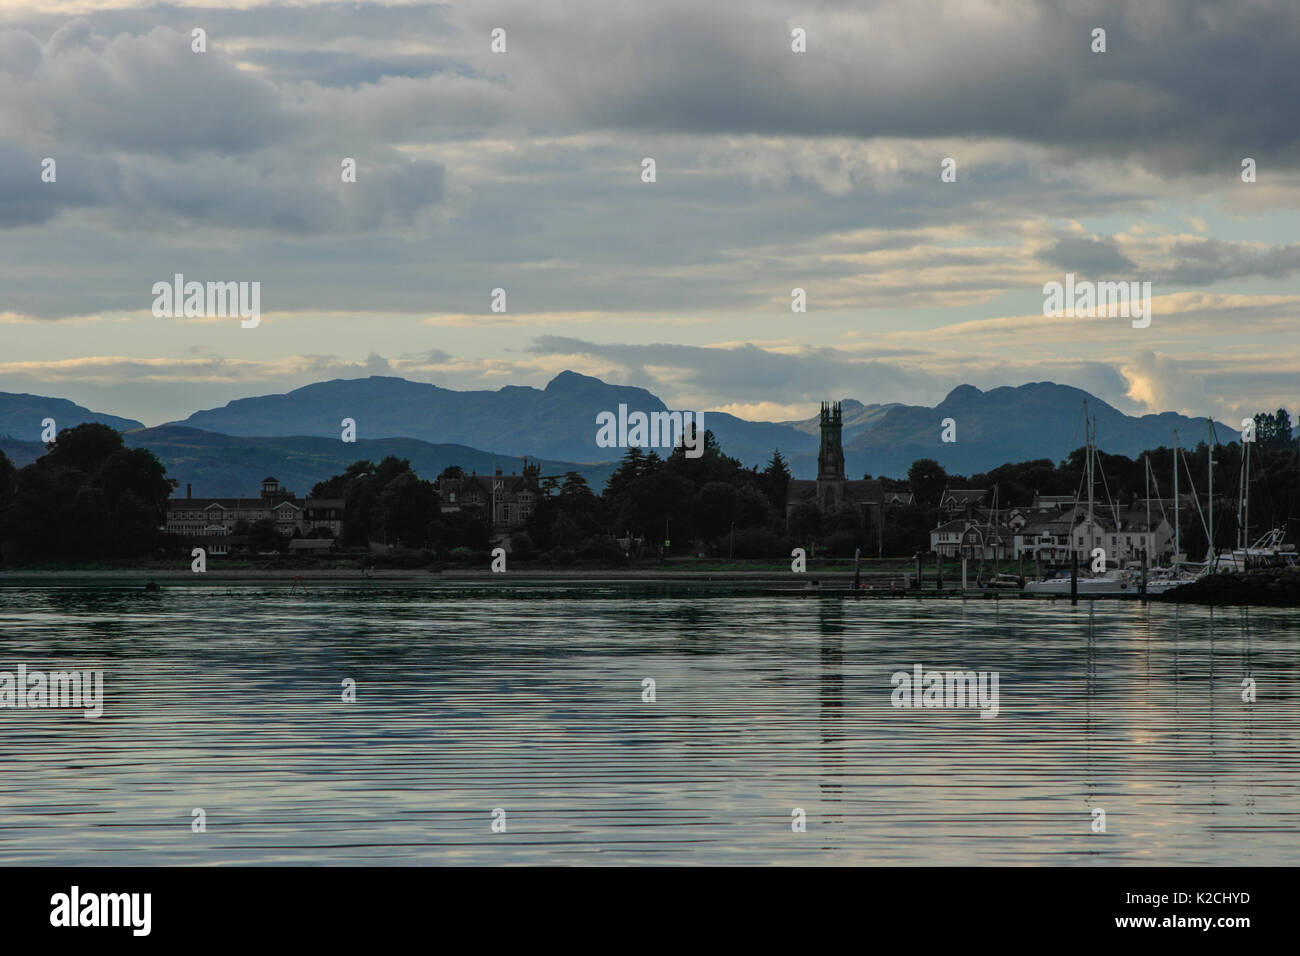 Rhu Marina in silhouette at dusk twilight with clouds and a mountains background light reflecting off calm windless sea taken from the water - Stock Image